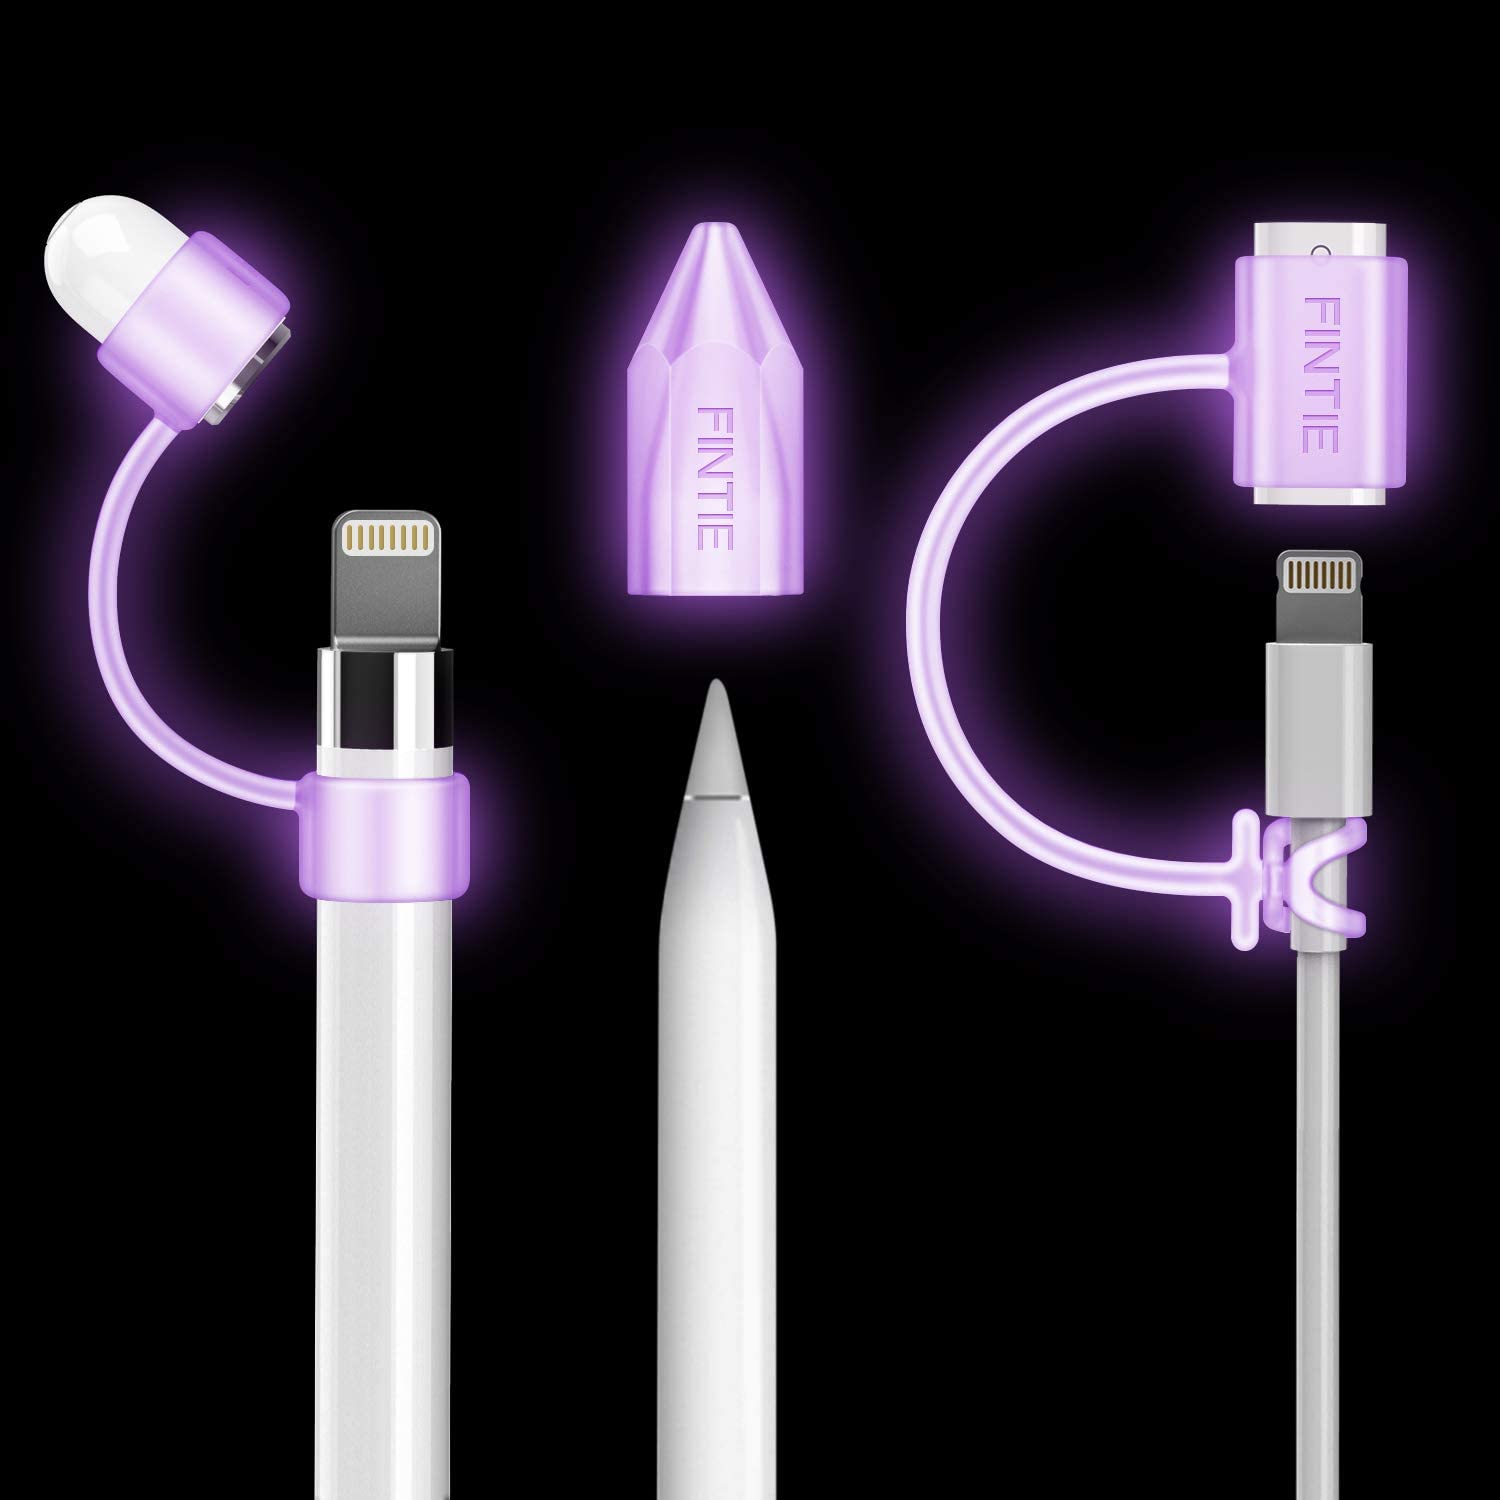 Fintie 3 Pieces Bundle for Apple Pencil Cap Holder, Nib Cover, Adapter Tether for Apple Pencil 1st Generation, iPad 10.2, iPad 9.7, iPad Air 3rd Gen/iPad Pro 10.5, iPad Mini 5 Pencil, Purple Glow